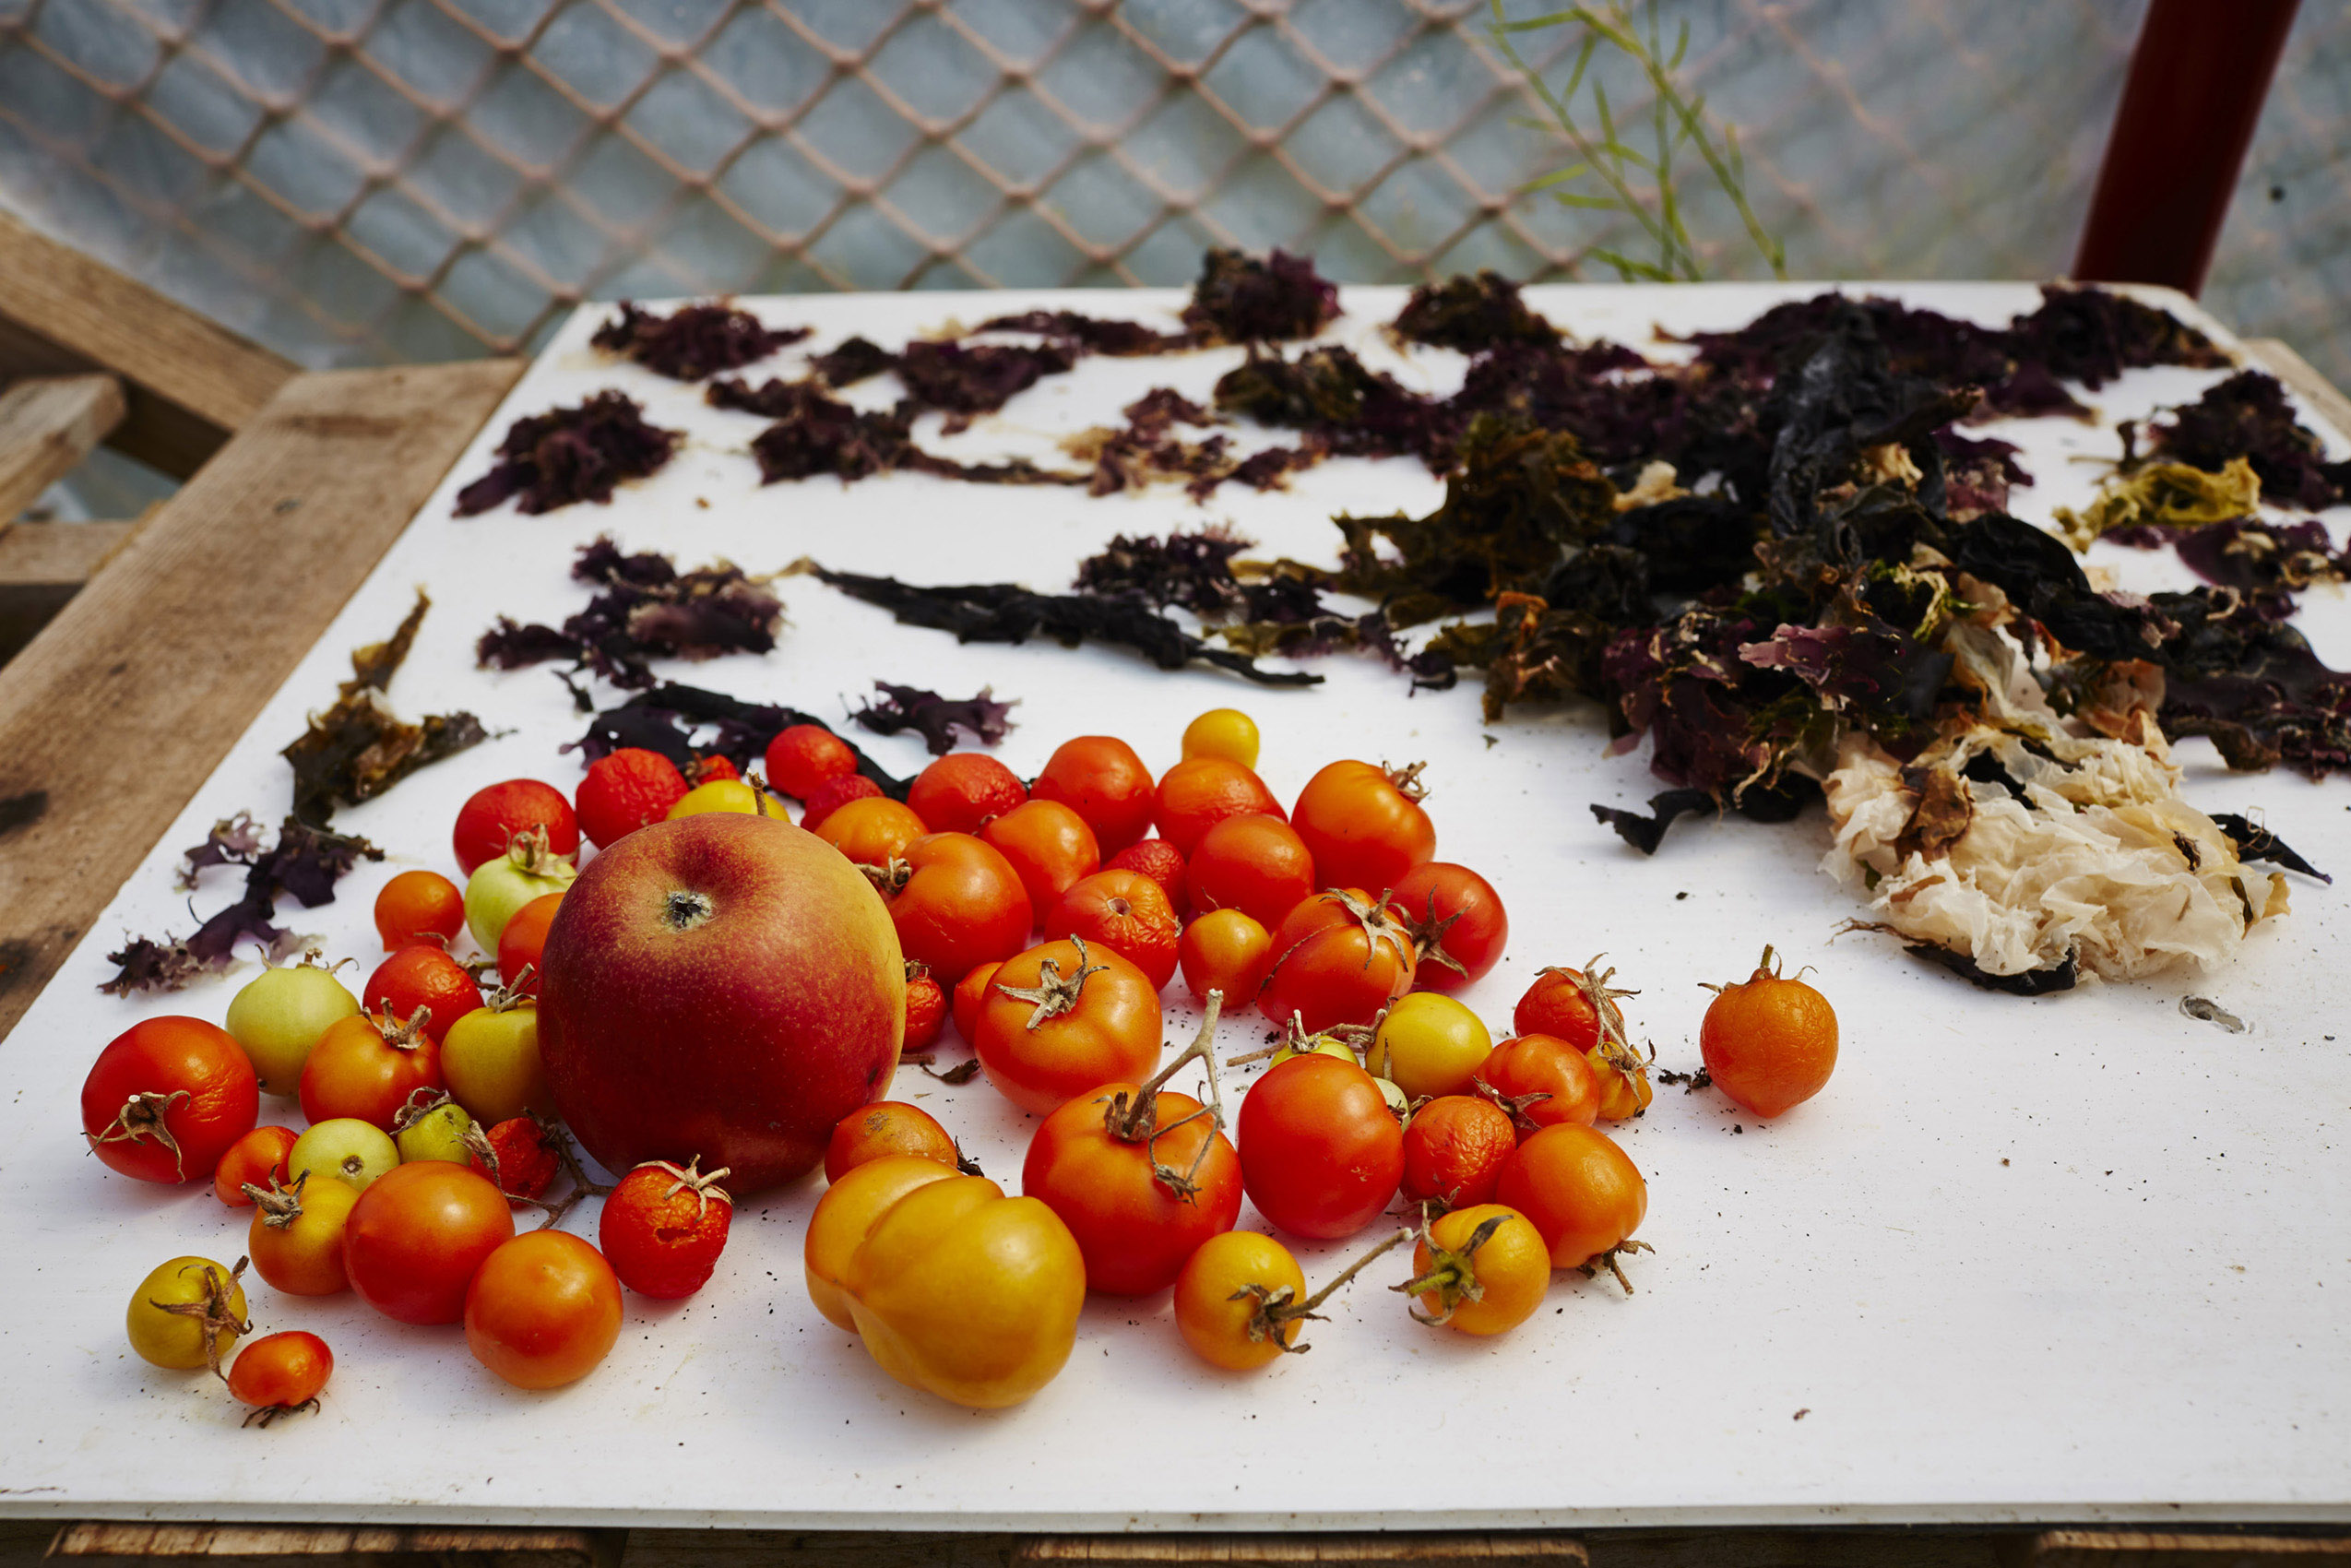 SteveRyan_Photographer_Ingredients_Produce_Vegetables_Tomatoes_18